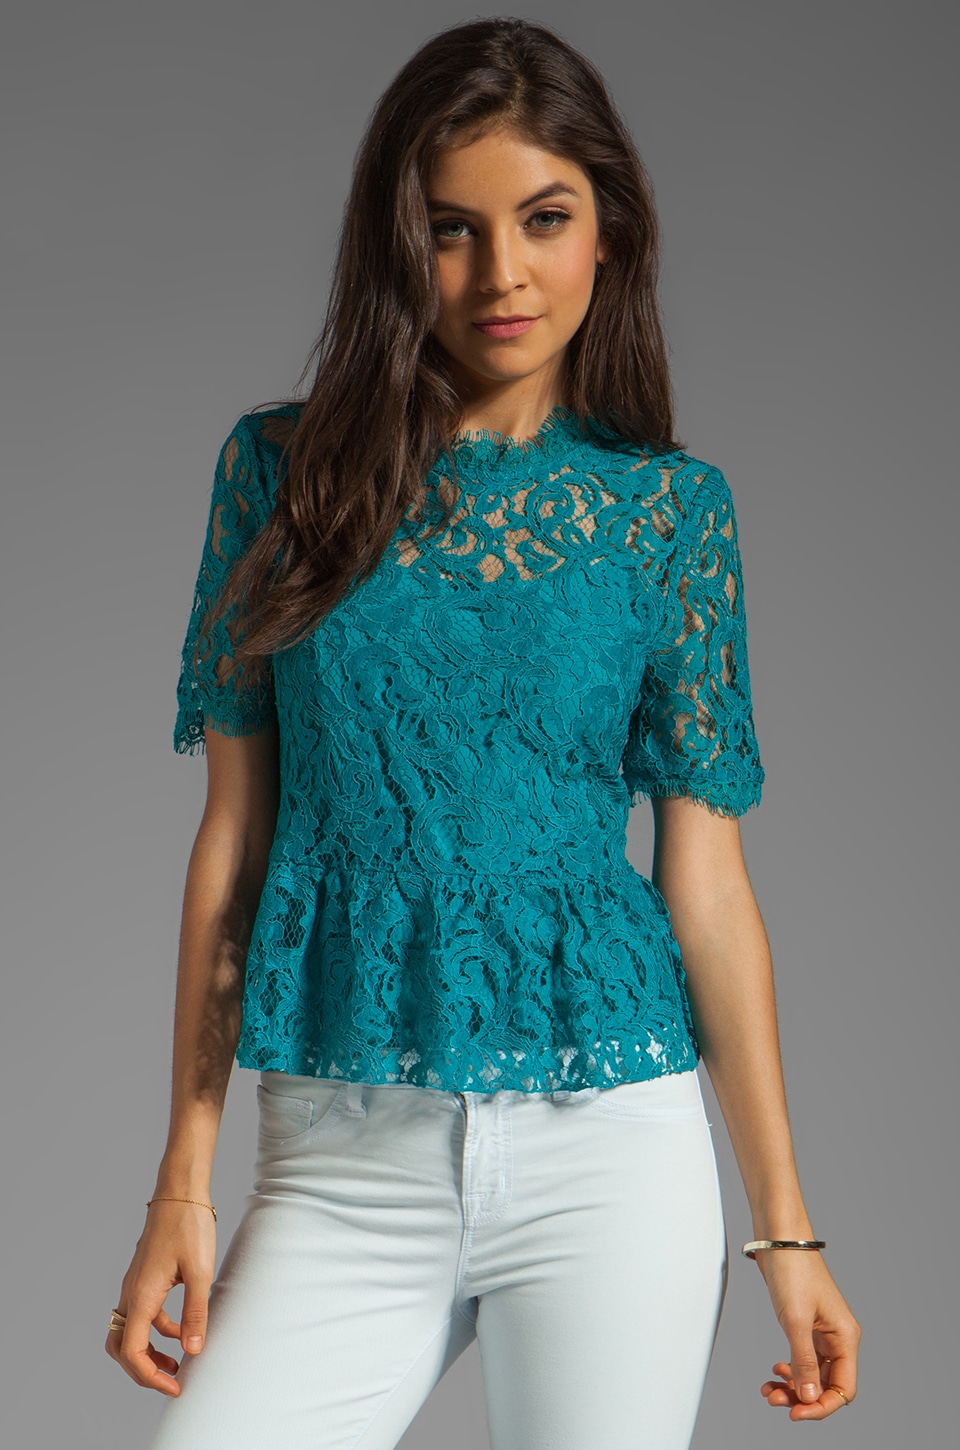 Dolce Vita Damica Peplum Lace Top in Teal